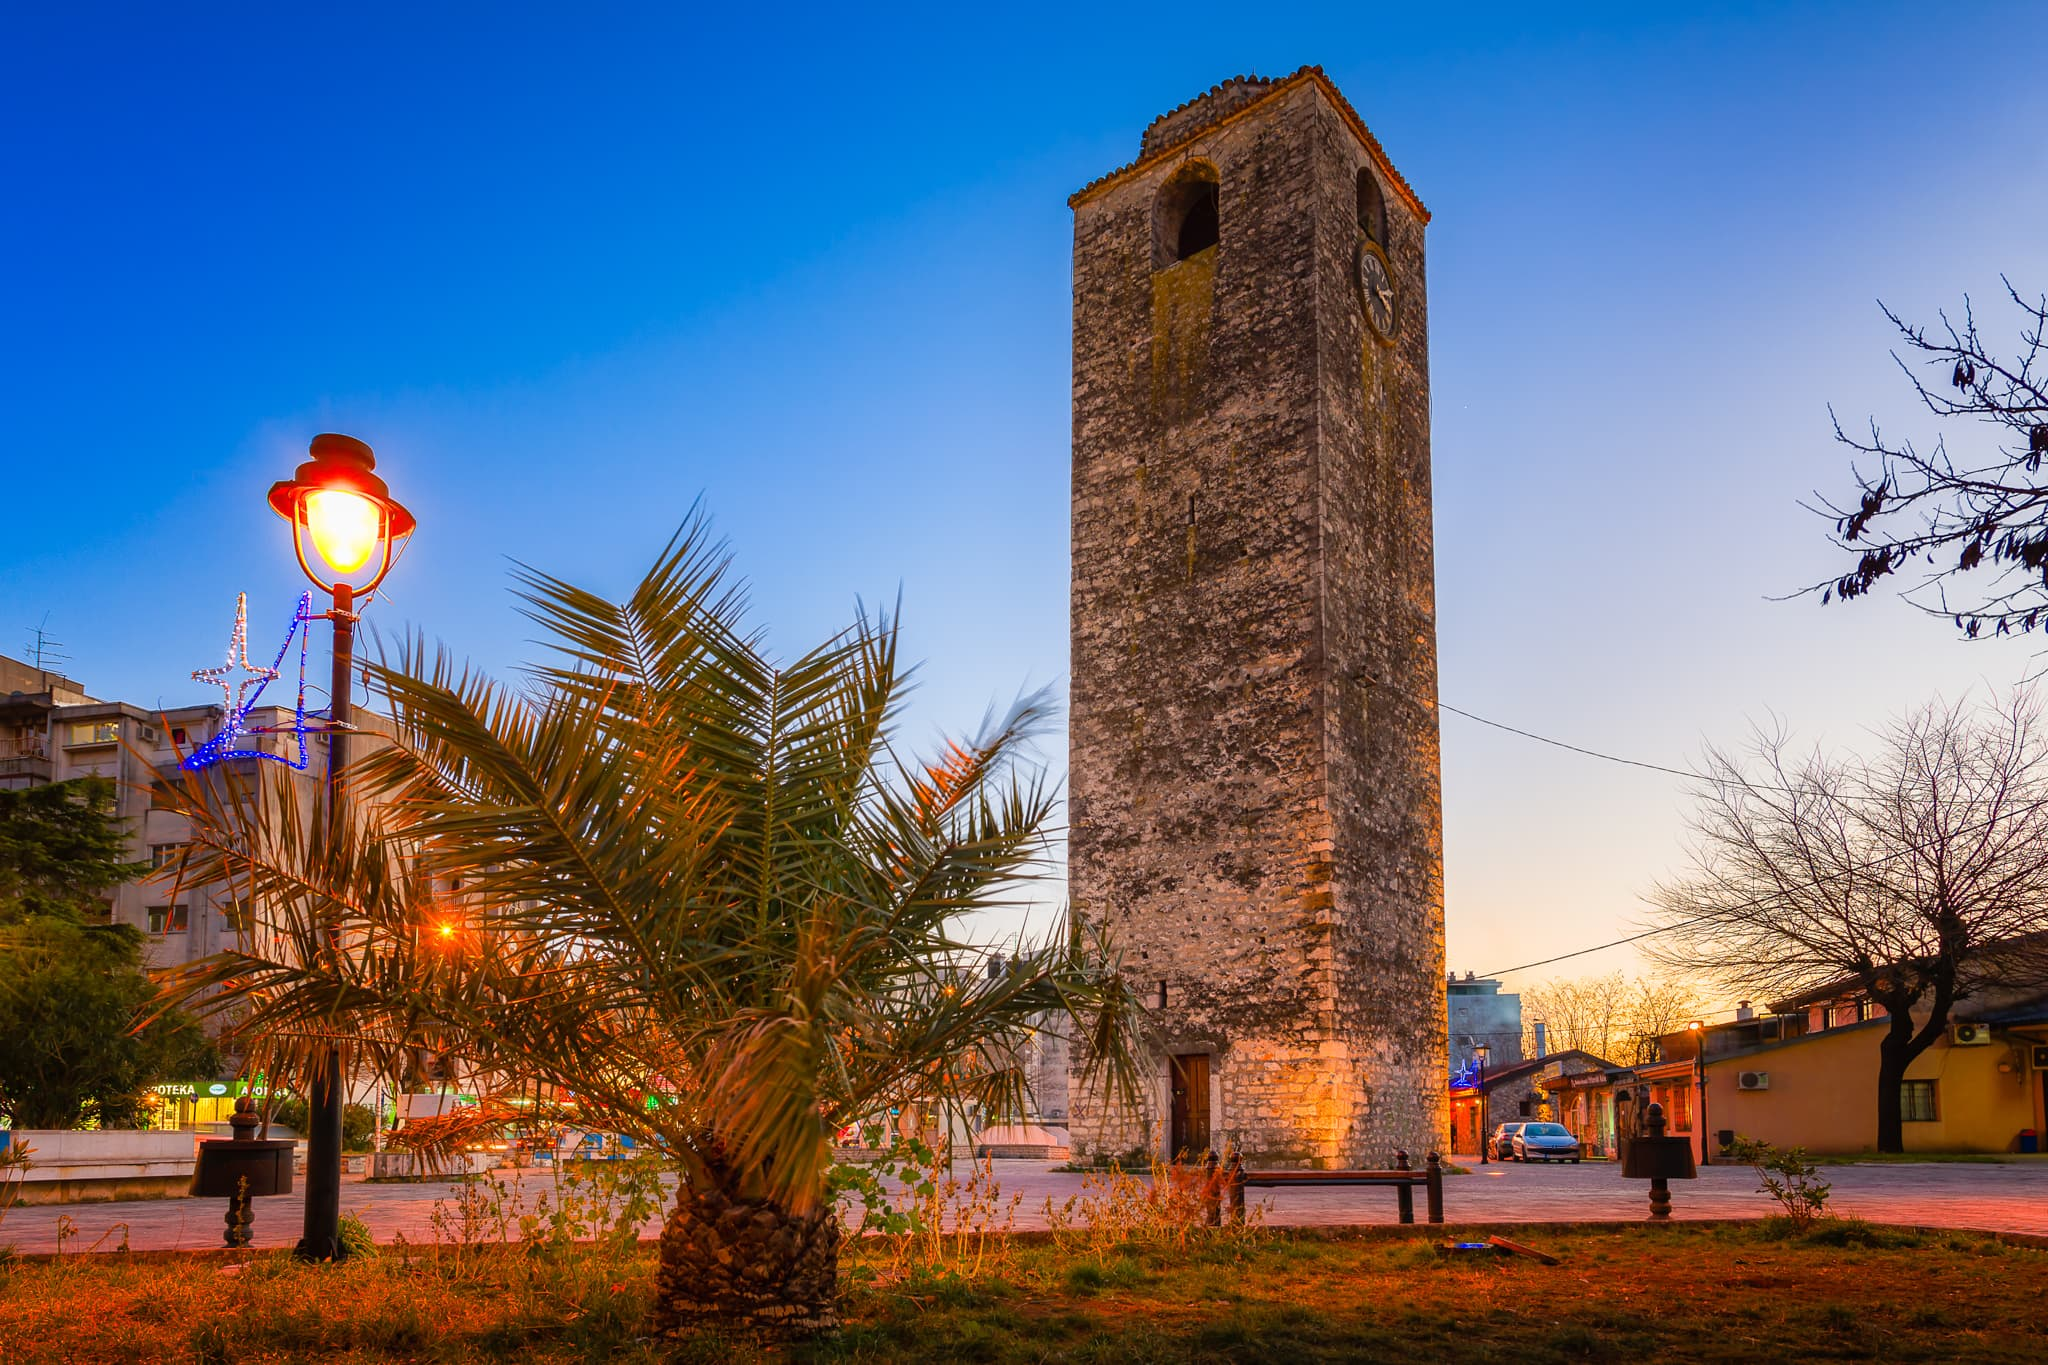 Clock Tower (Sahat Kula) in Podgorica, Montenegro. Sight from Ottoman times.